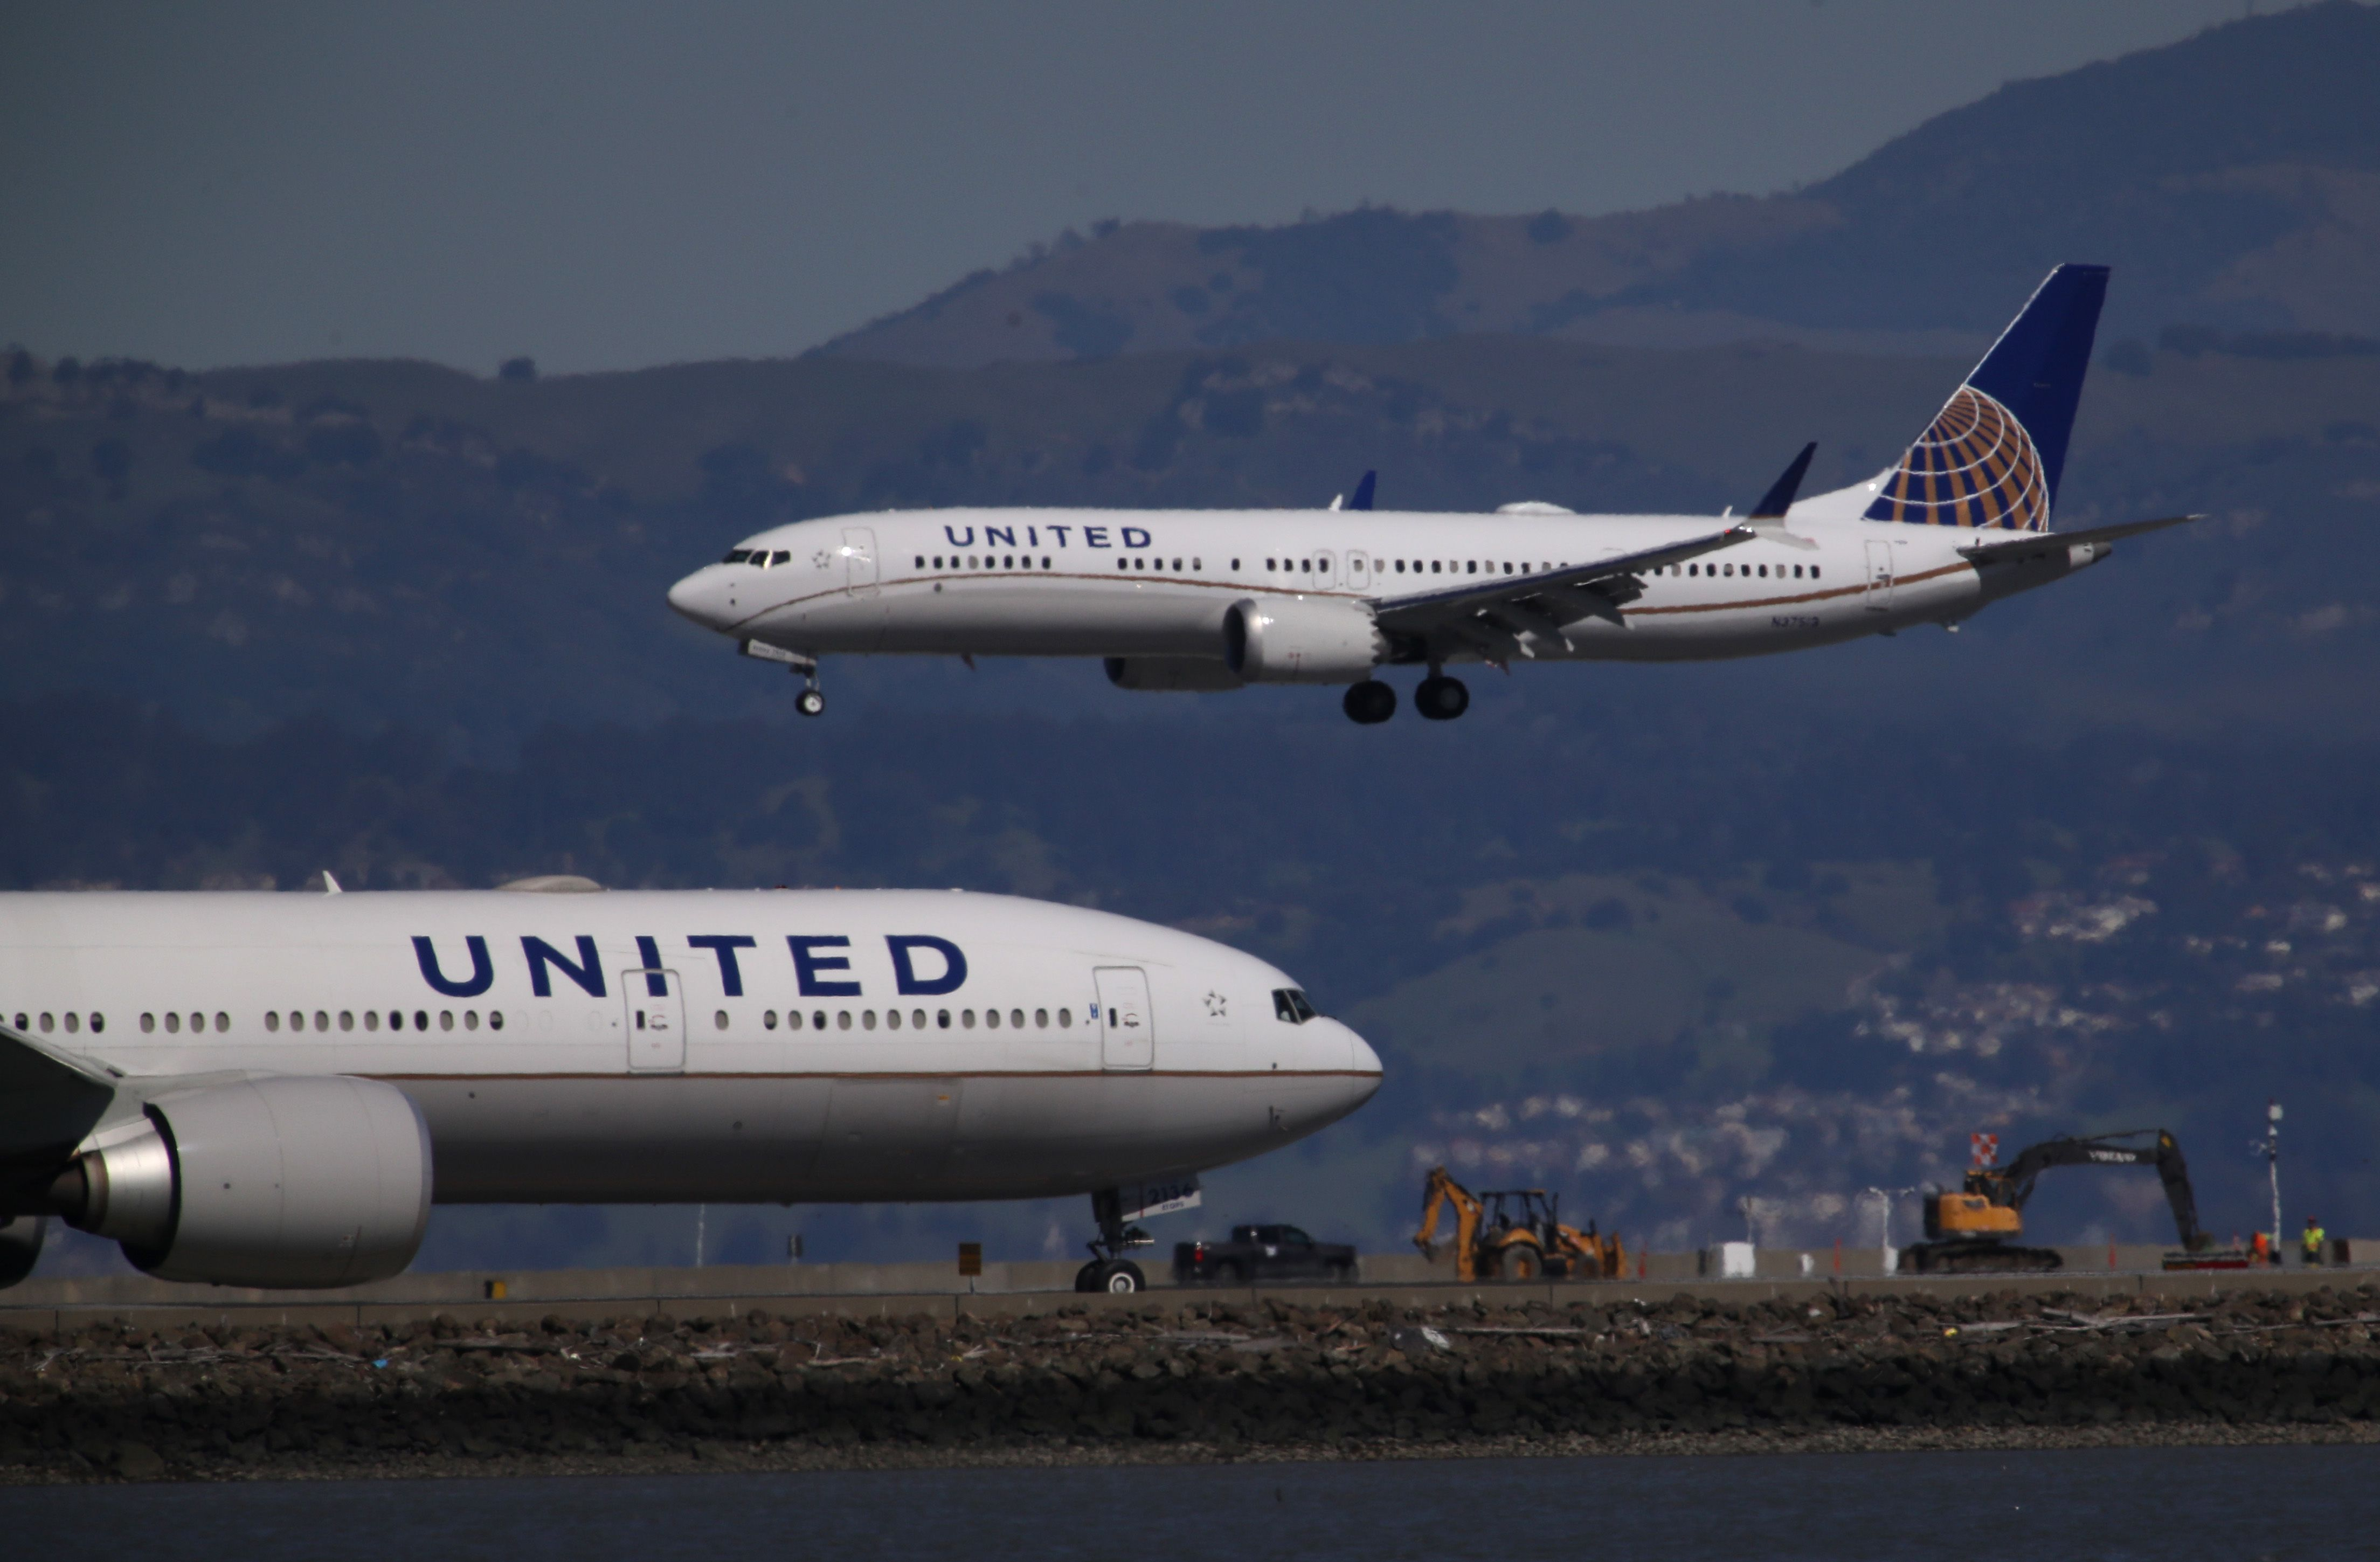 United Airlines Q2 2019 earnings beat Wall Street estimates